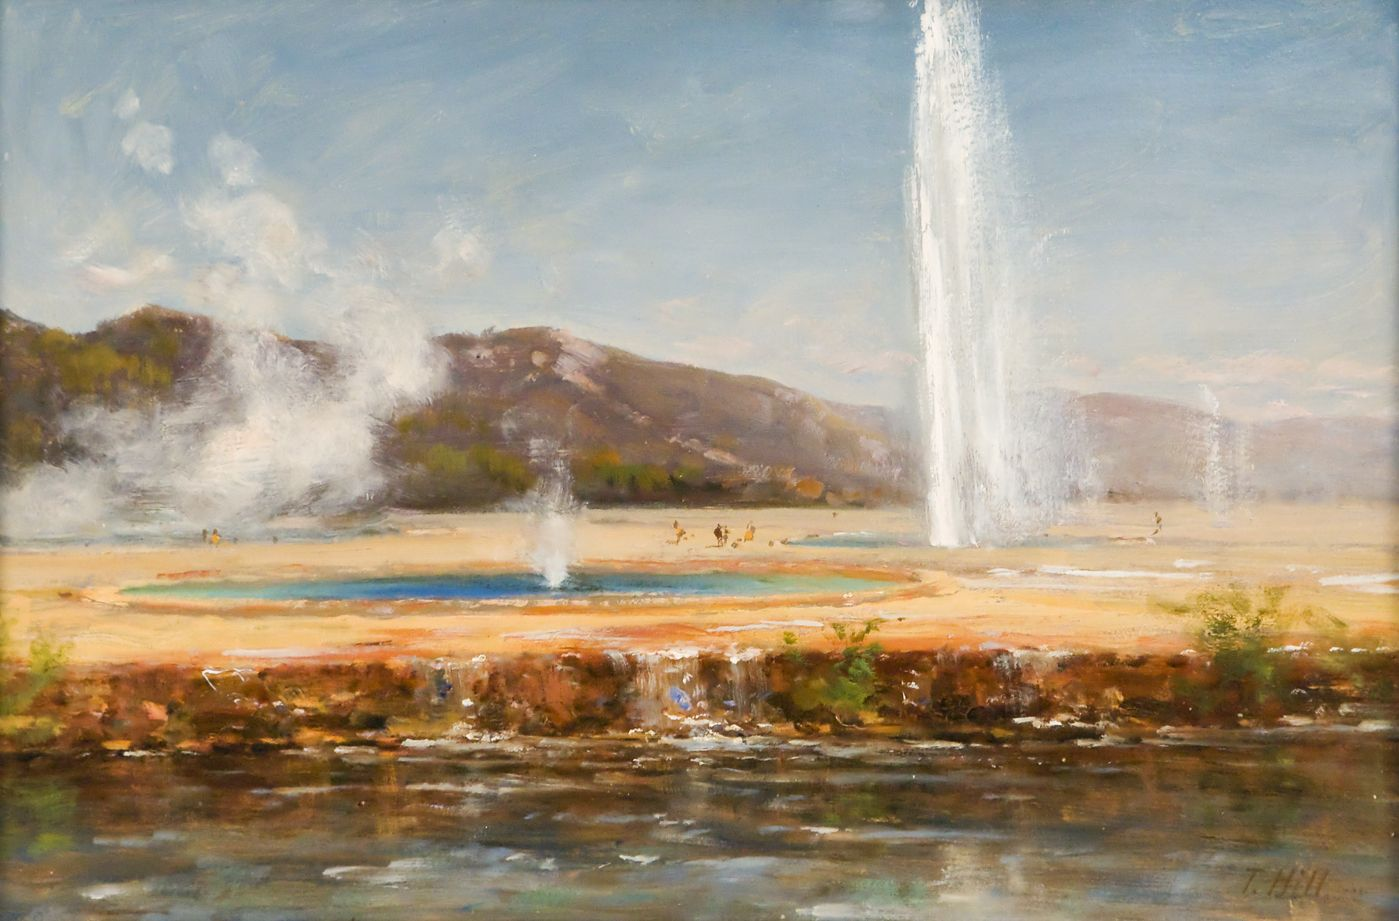 Thomas Hill, Yellowstone Geysers, National Parks, Yellowstone National Park, western art